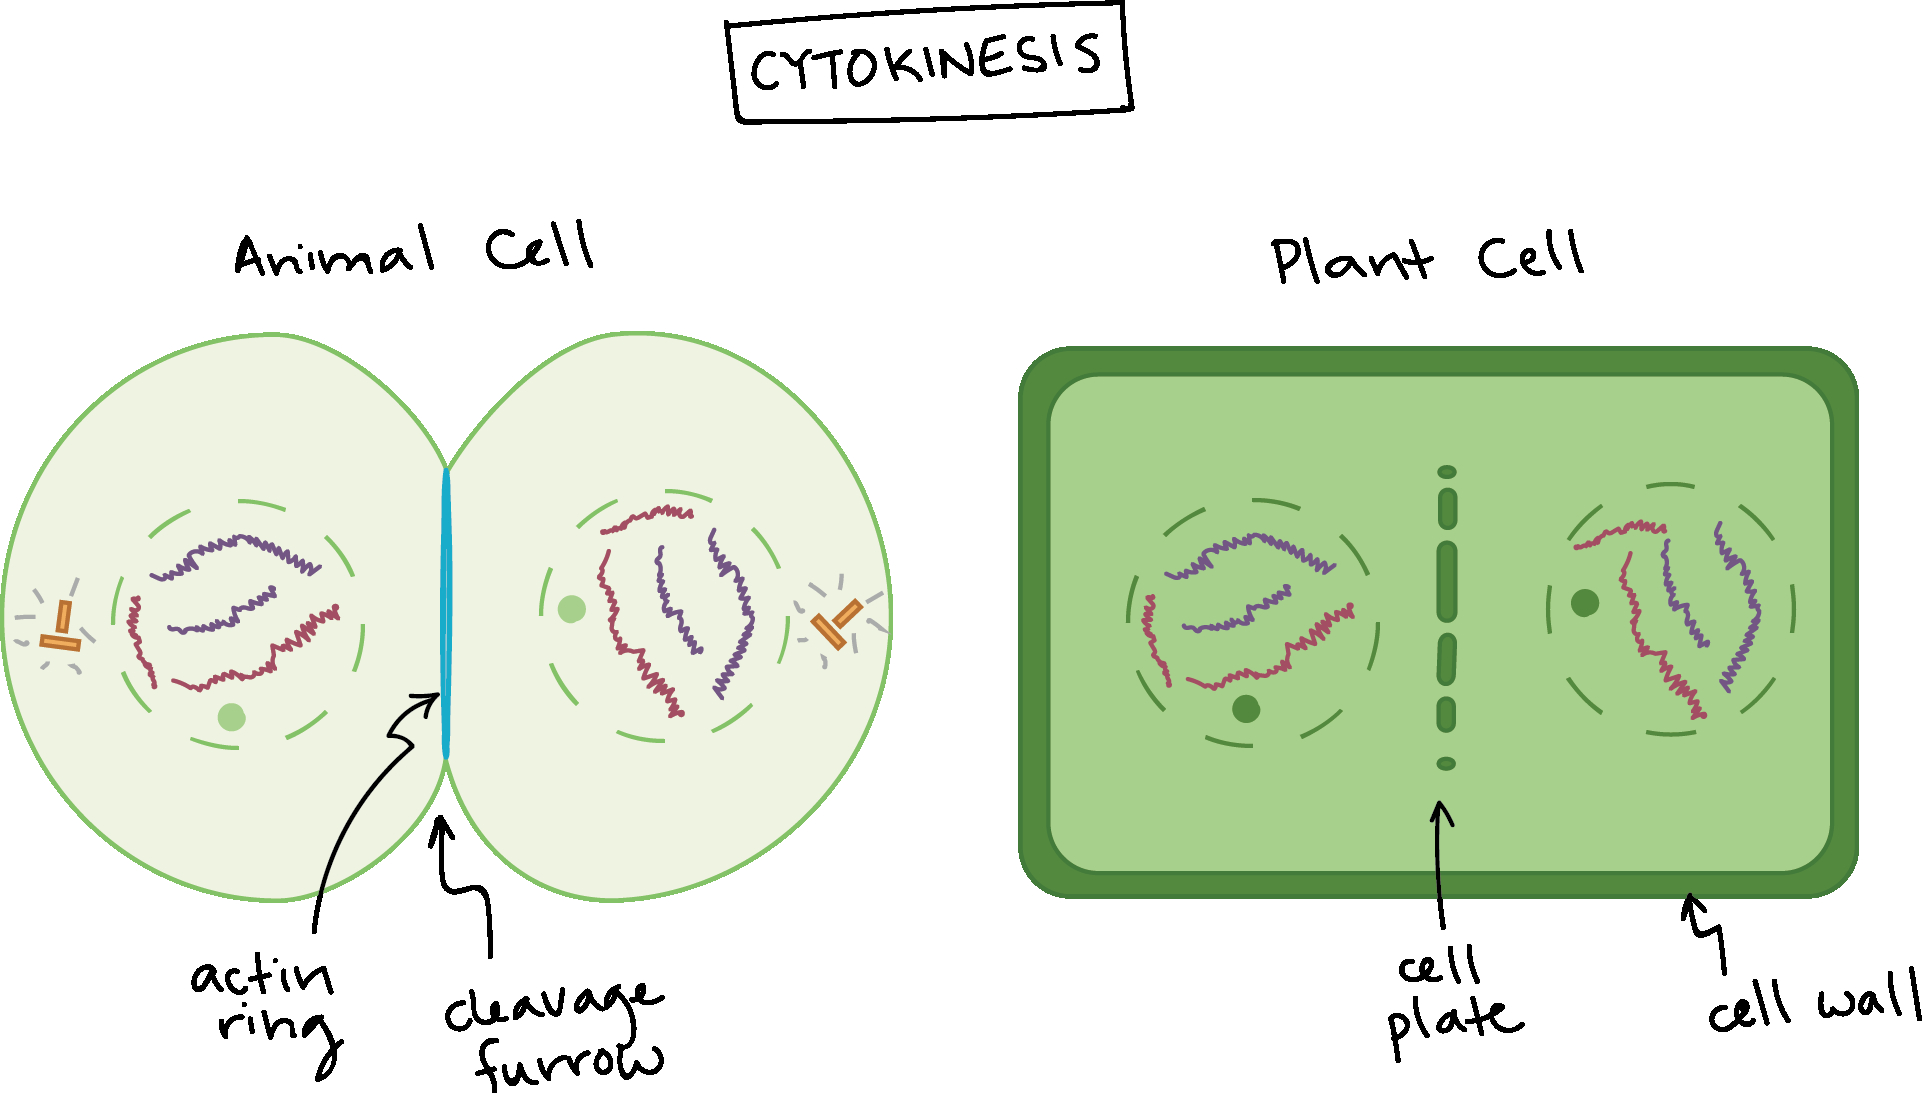 Cell Cycle Diagram The Cell Cycle And Mitosis Review Article Khan Academy